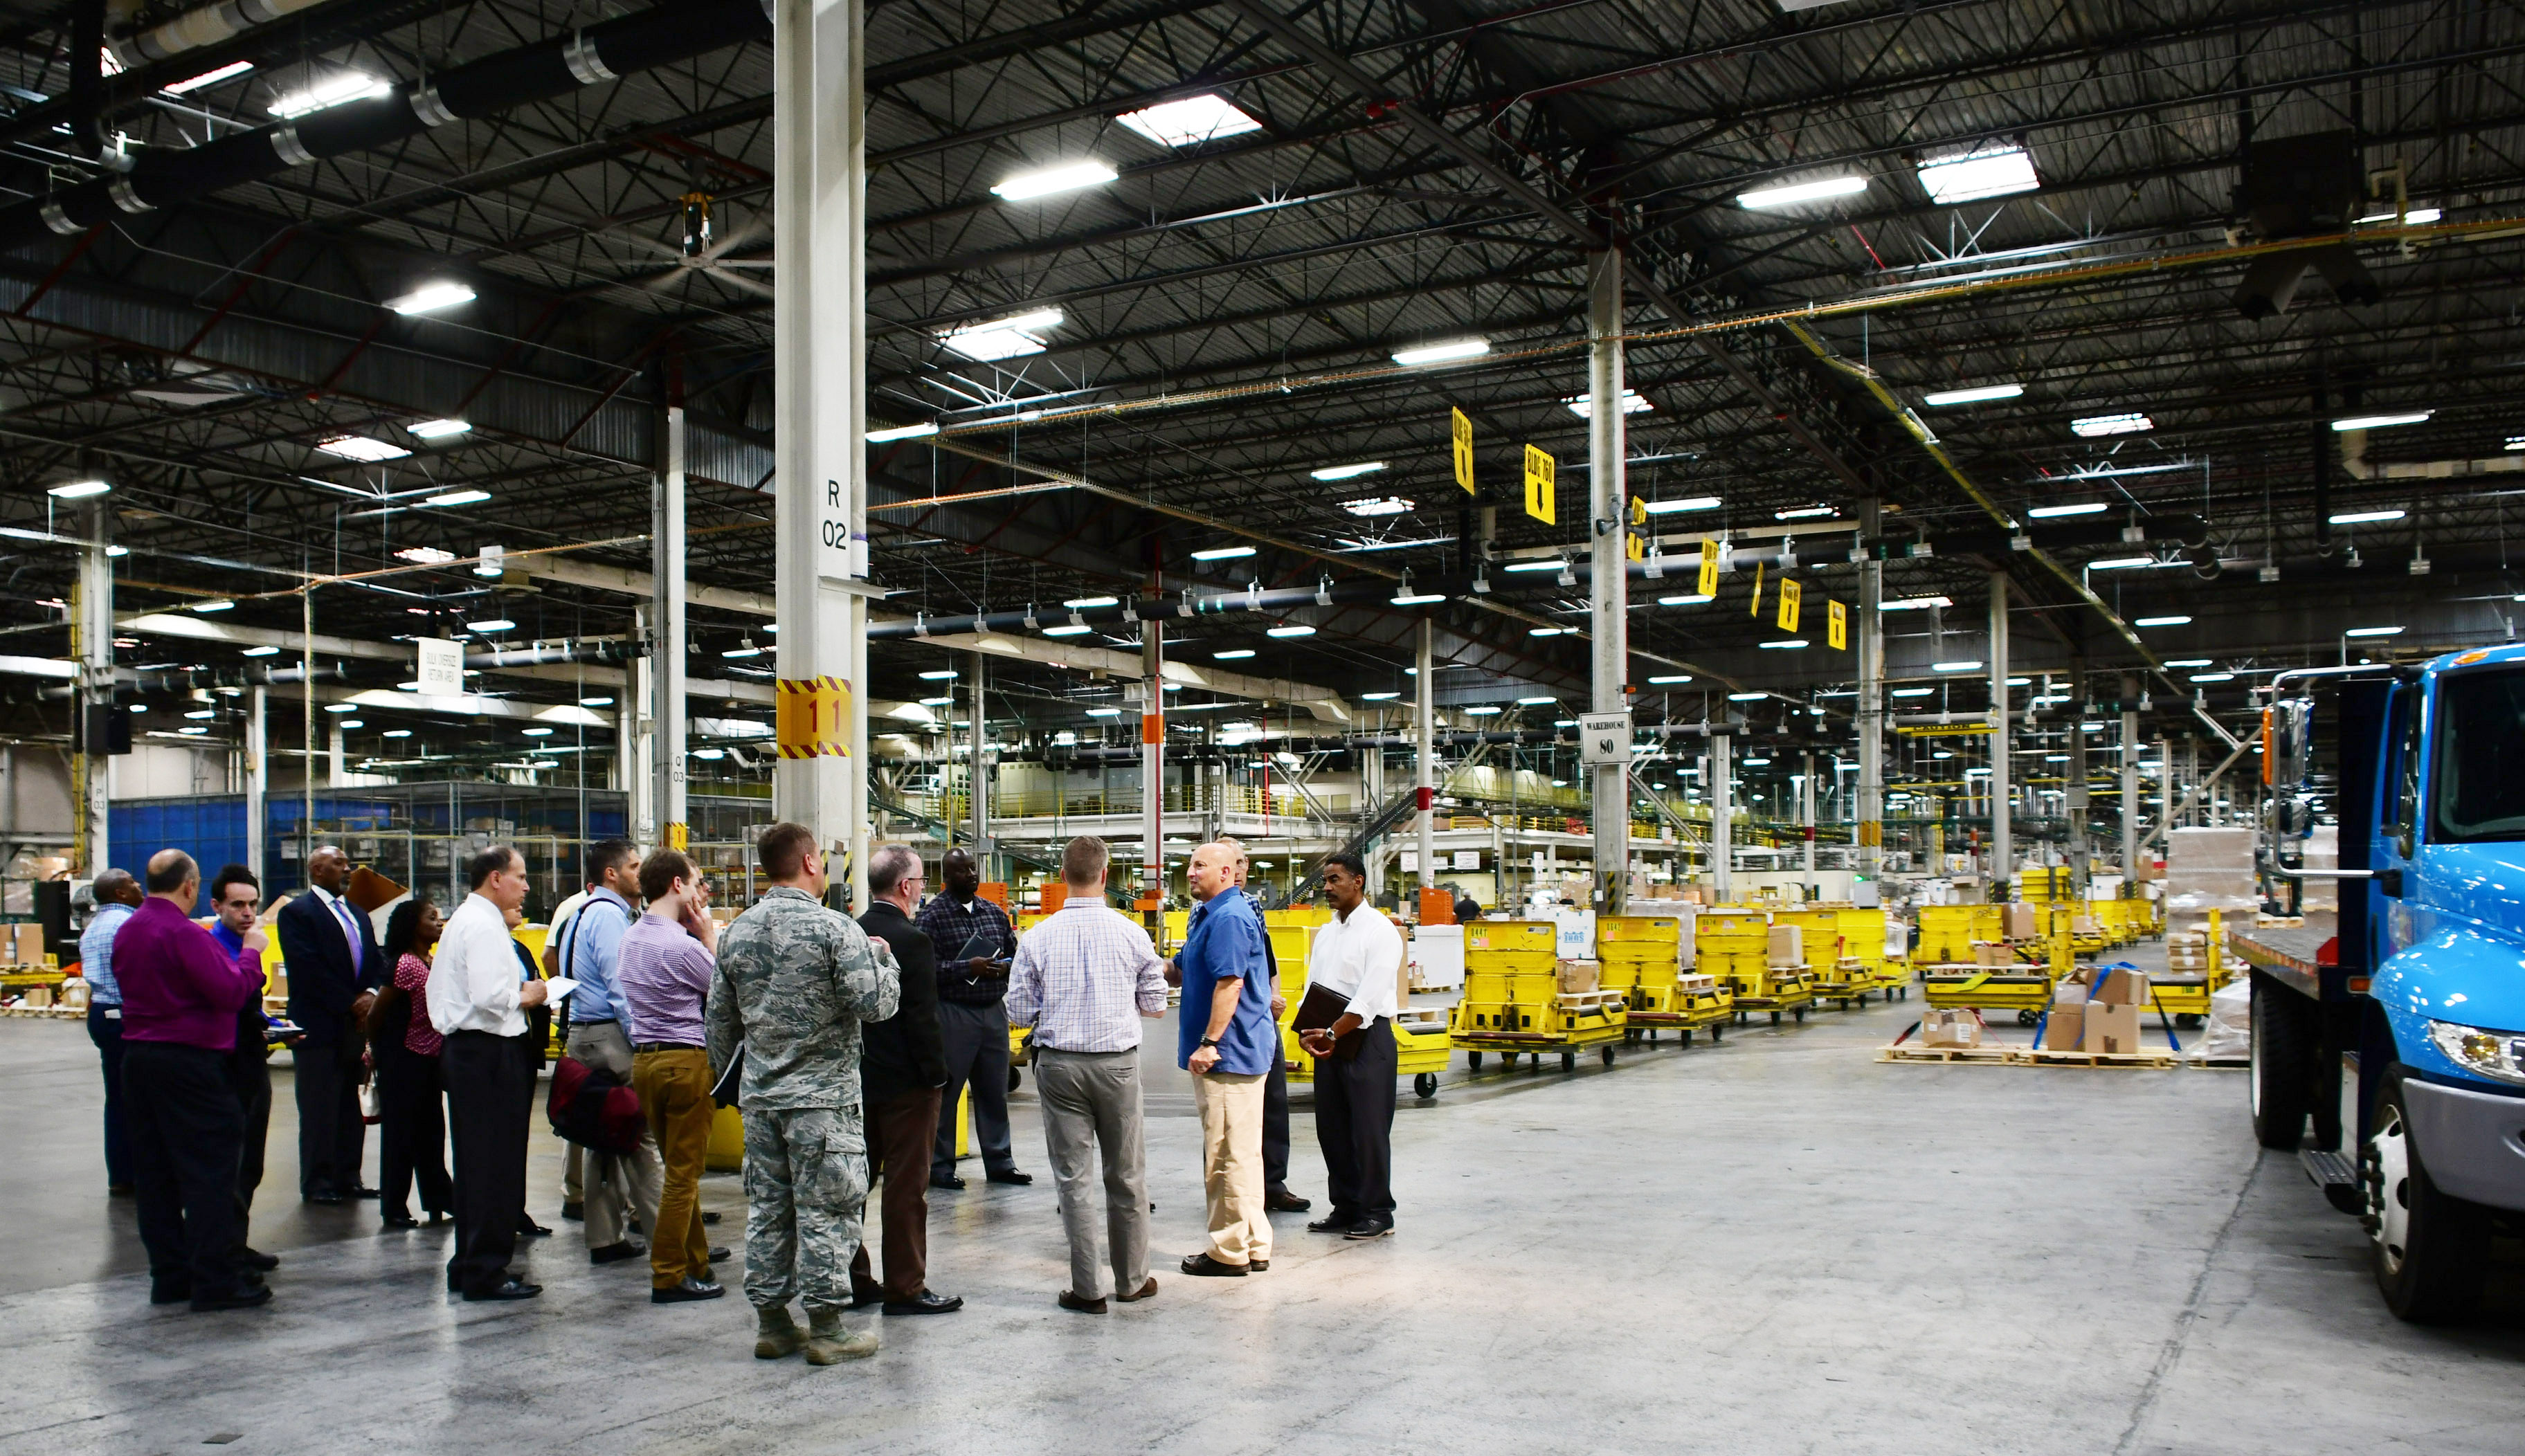 A group is gathered in a warehouse, showing the expanse of the warehouse behind them